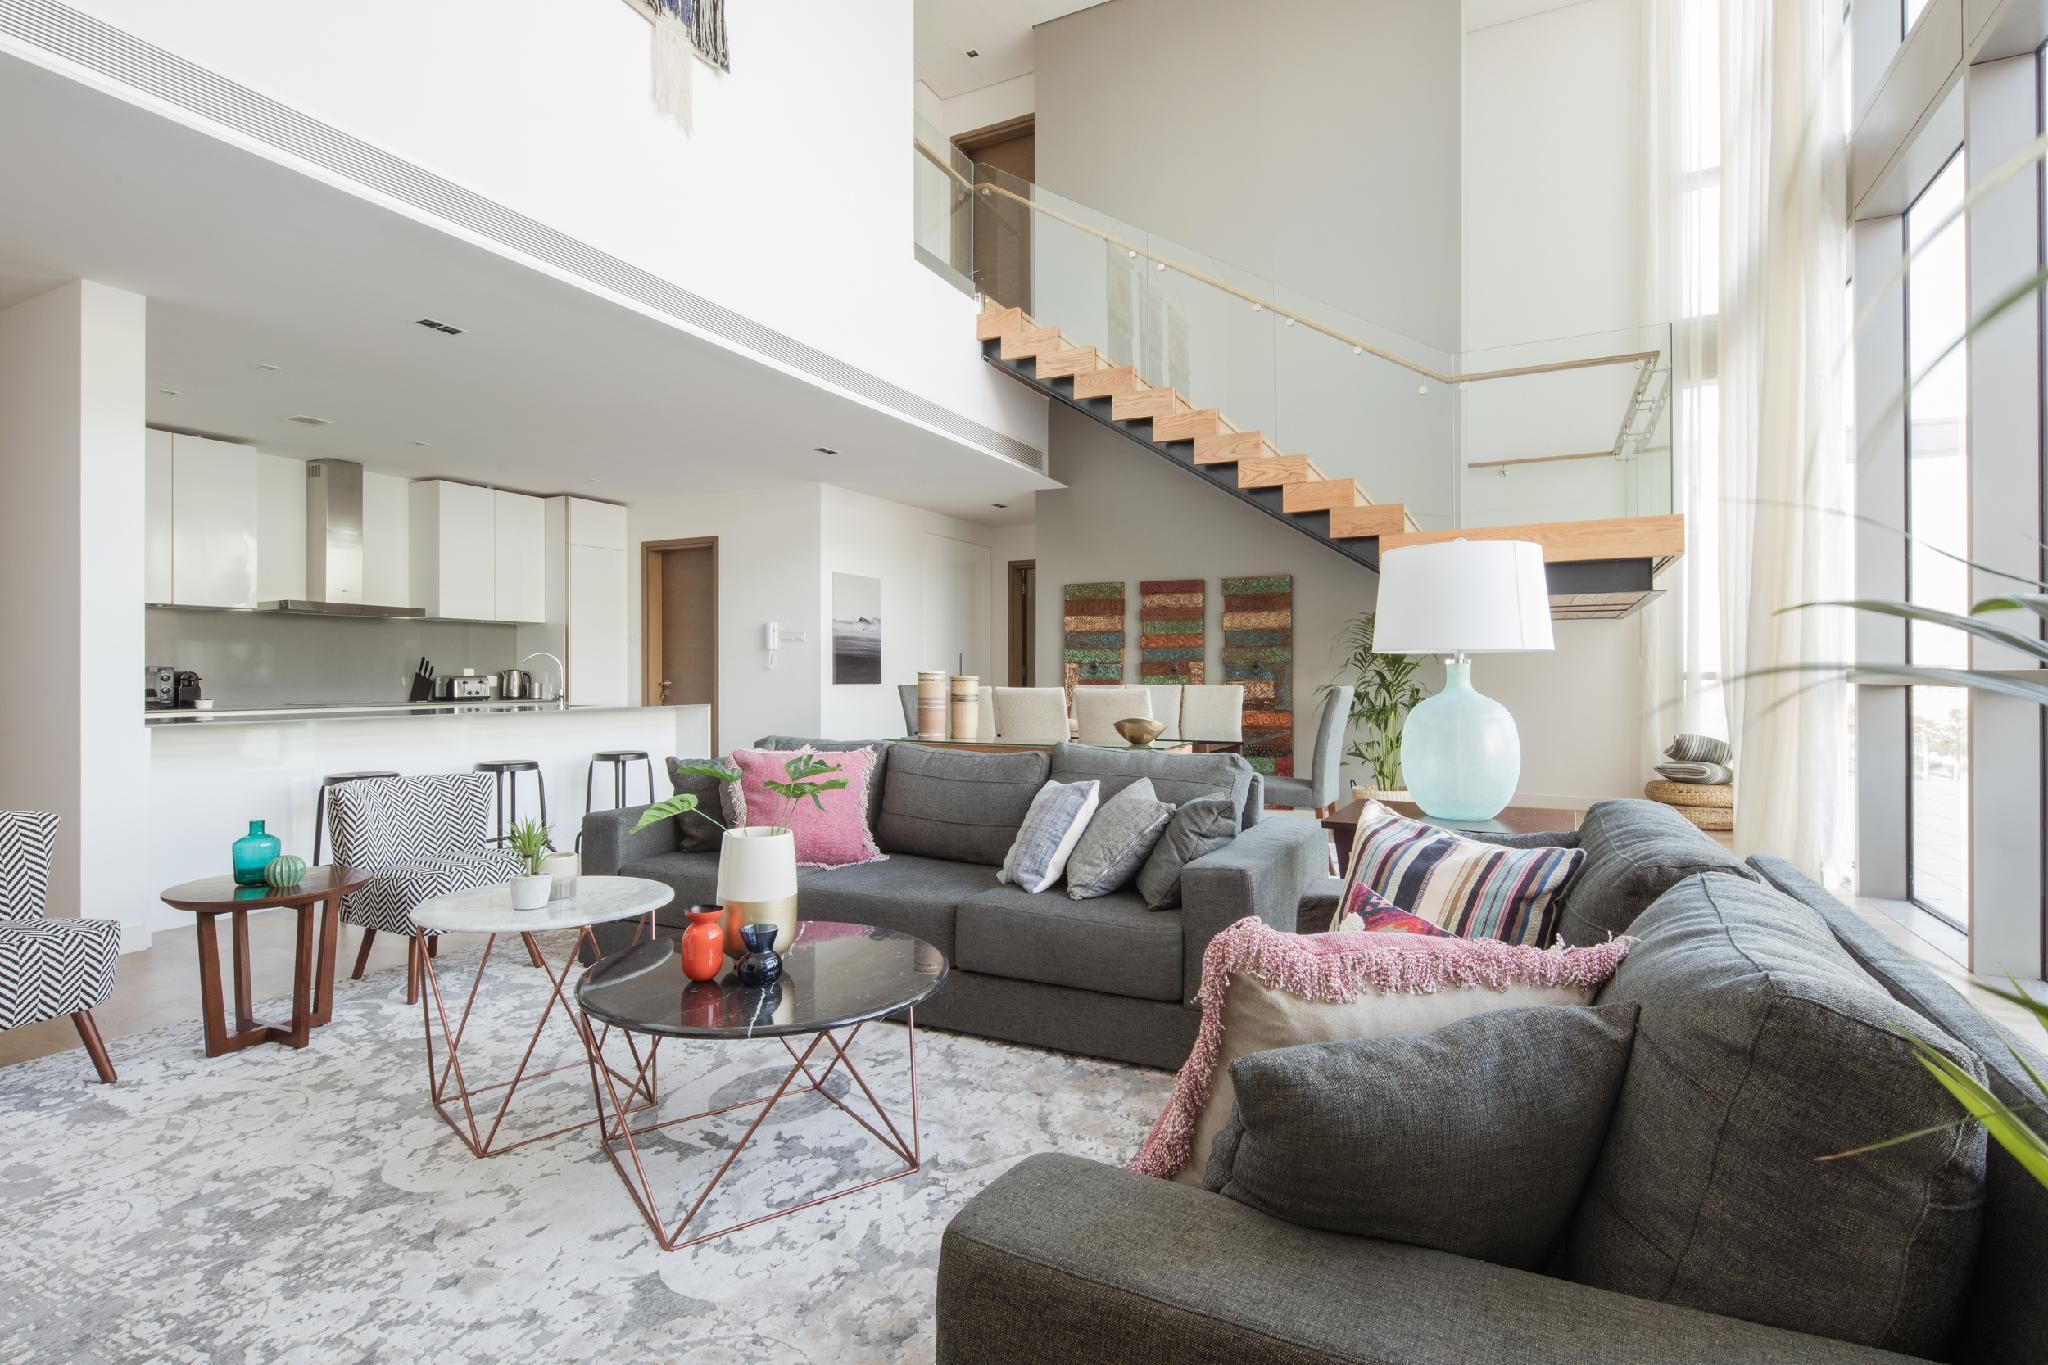 Stunning 3 BR Penthouse With High Ceilings